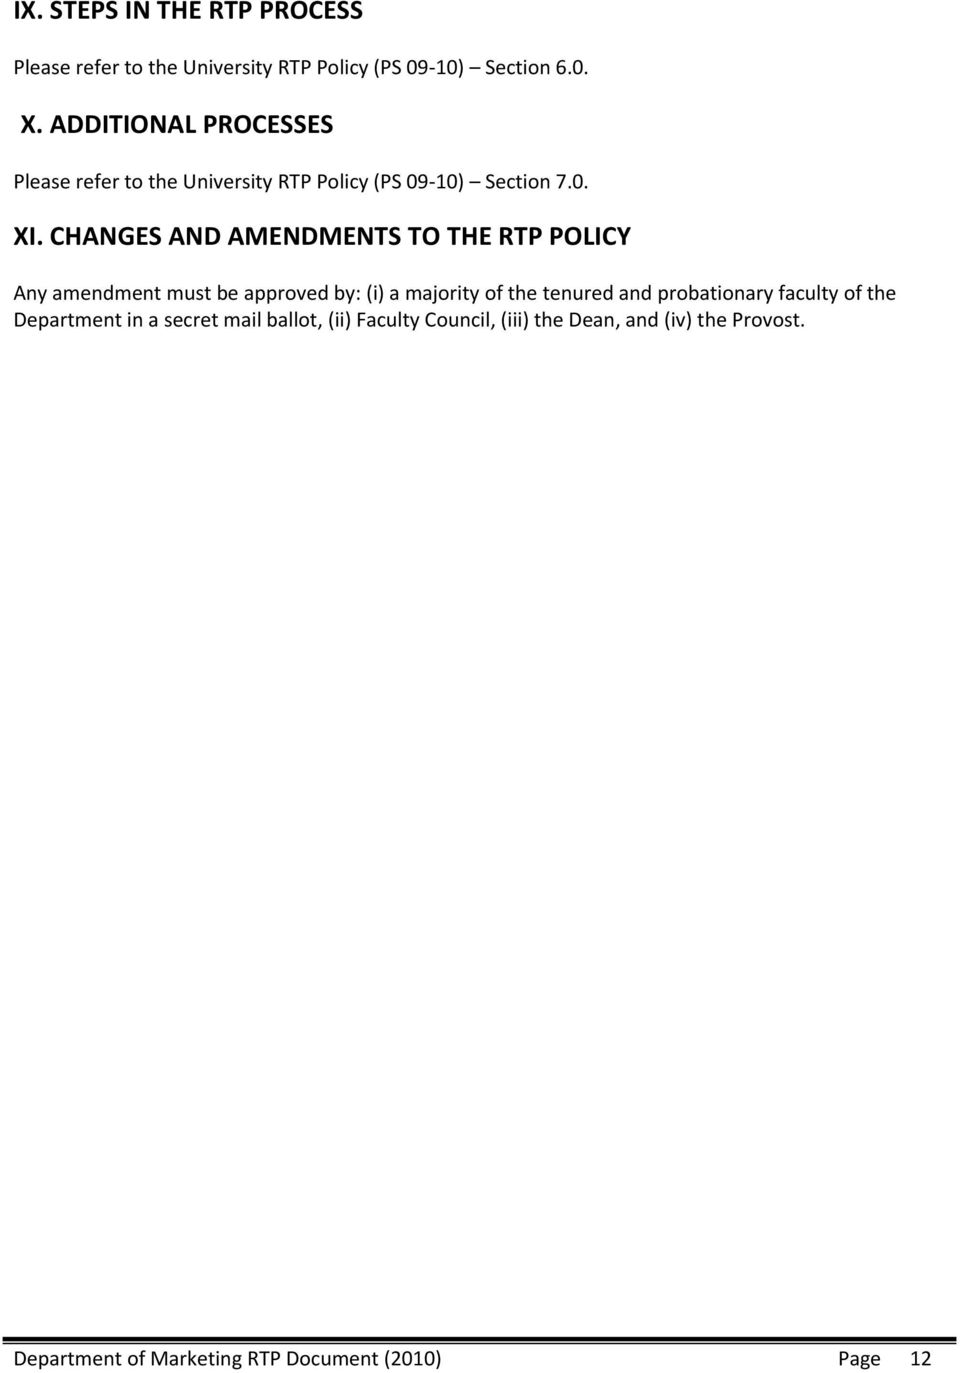 CHANGES AND AMENDMENTS TO THE RTP POLICY Any amendment must be approved by: (i) a majority of the tenured and